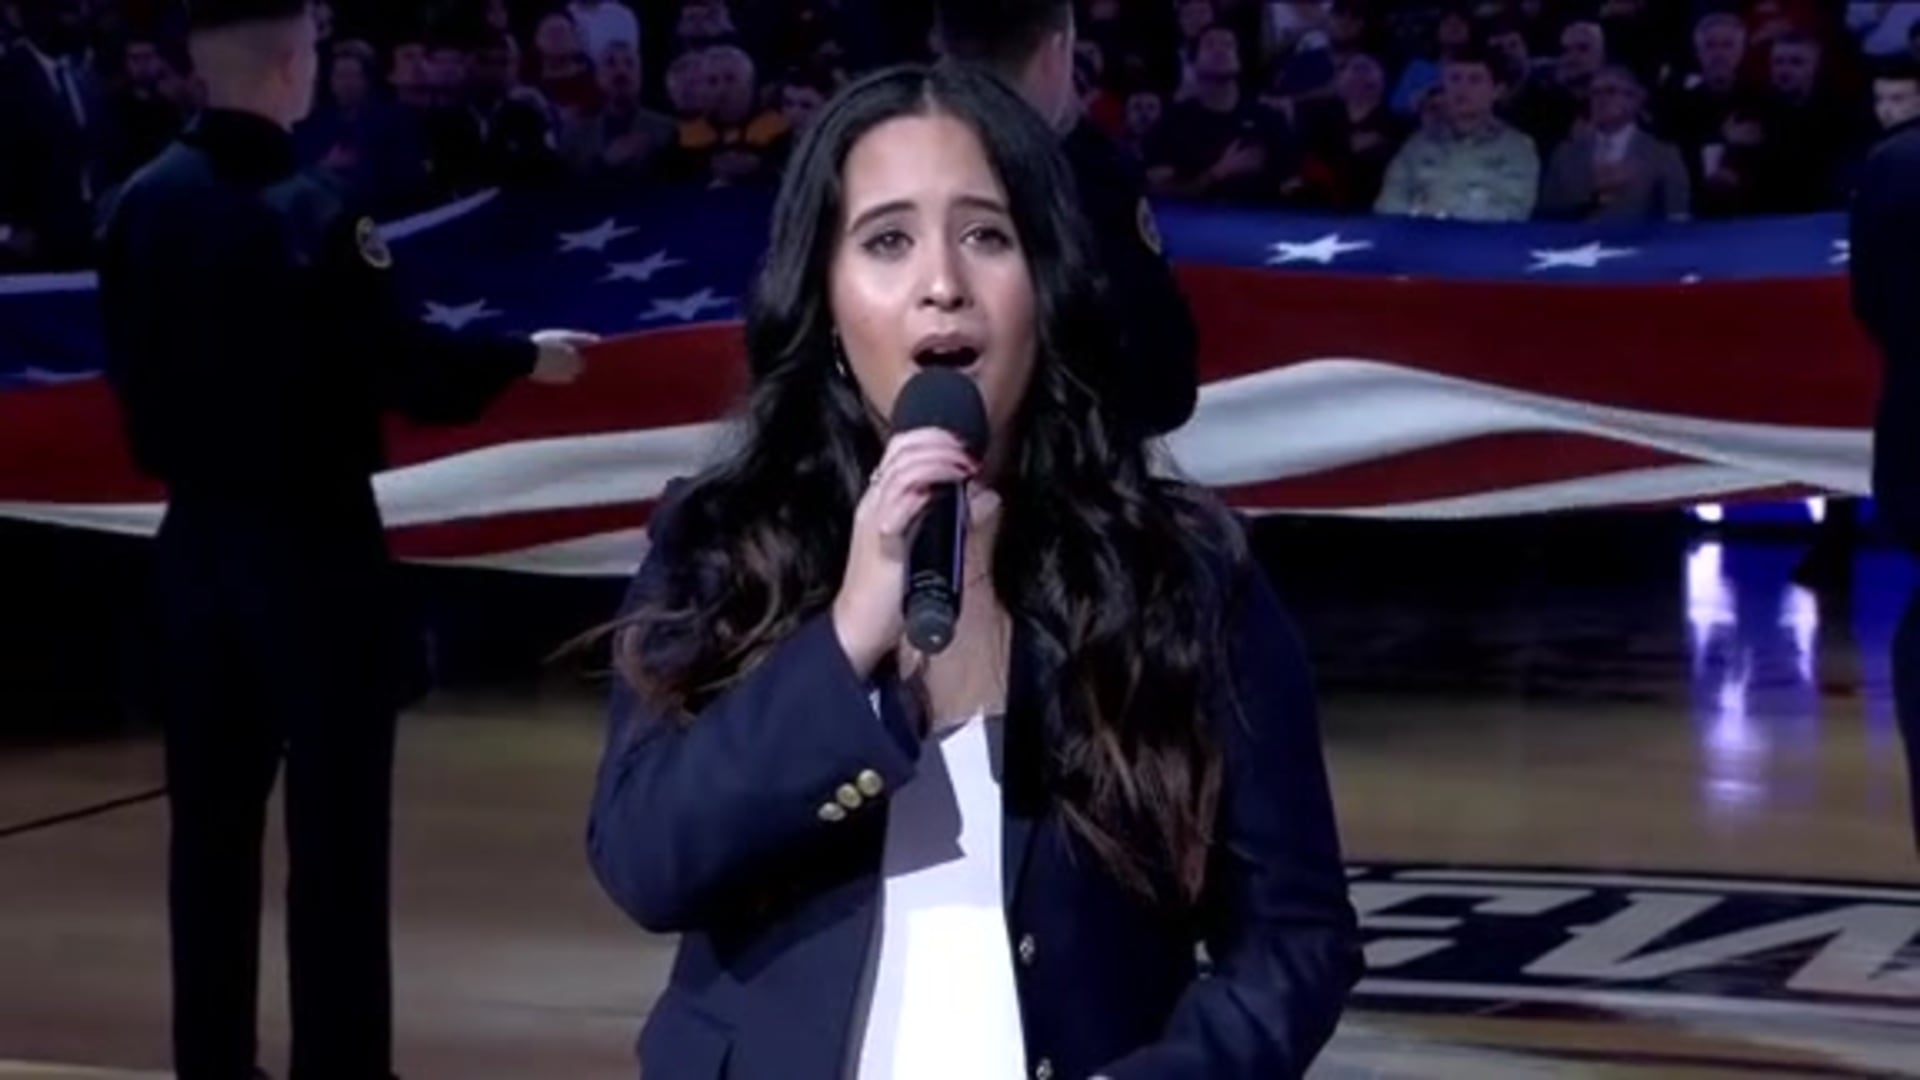 Entertainment: National Anthem performance by Francesca Ani – January 26 vs. Boston Celtics